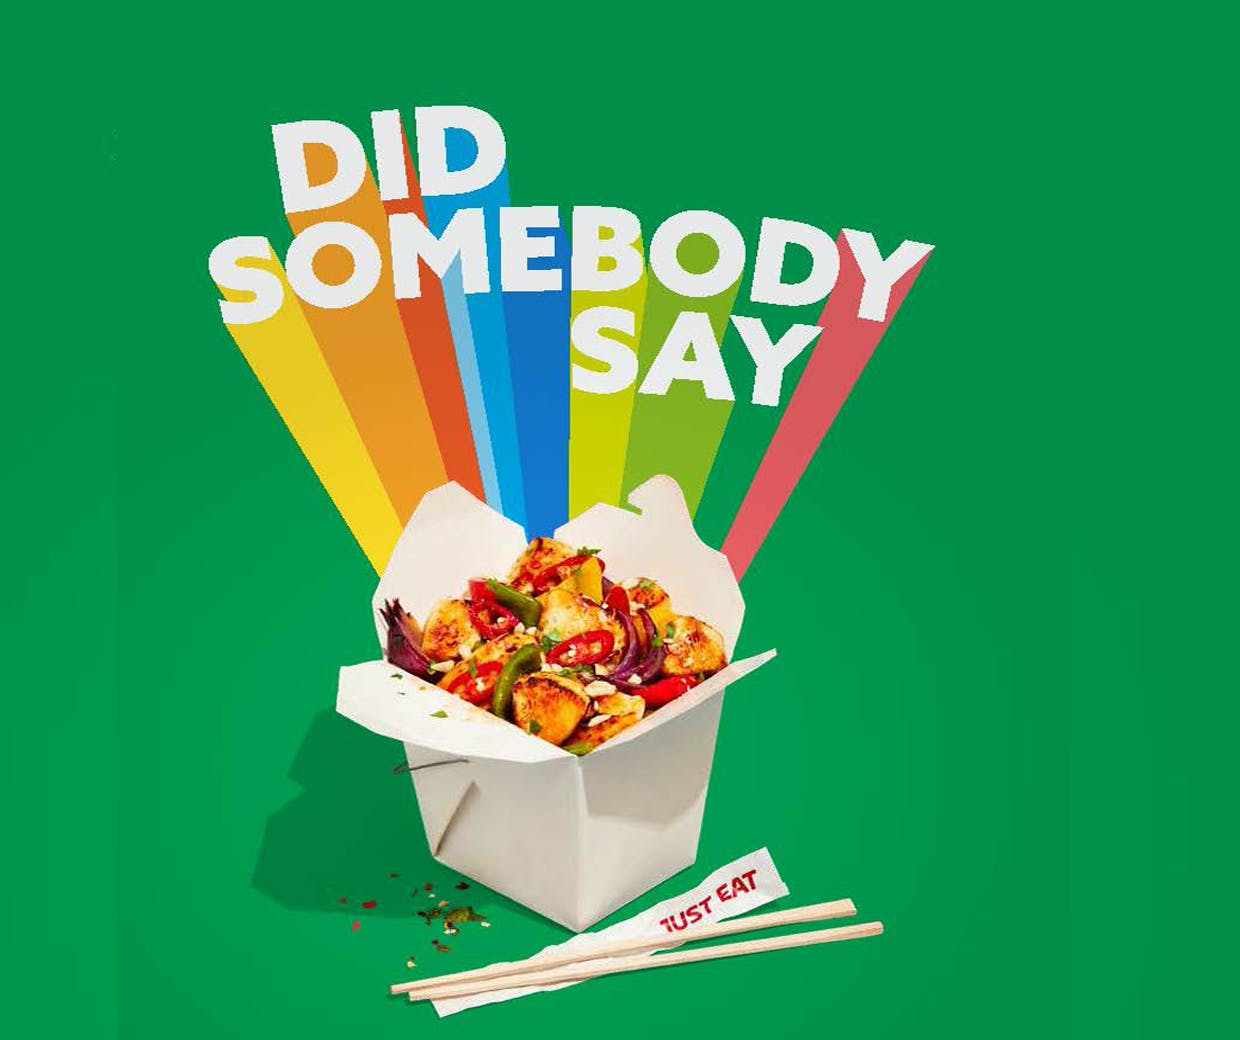 Just Eat Launches First Global Brand Campaign